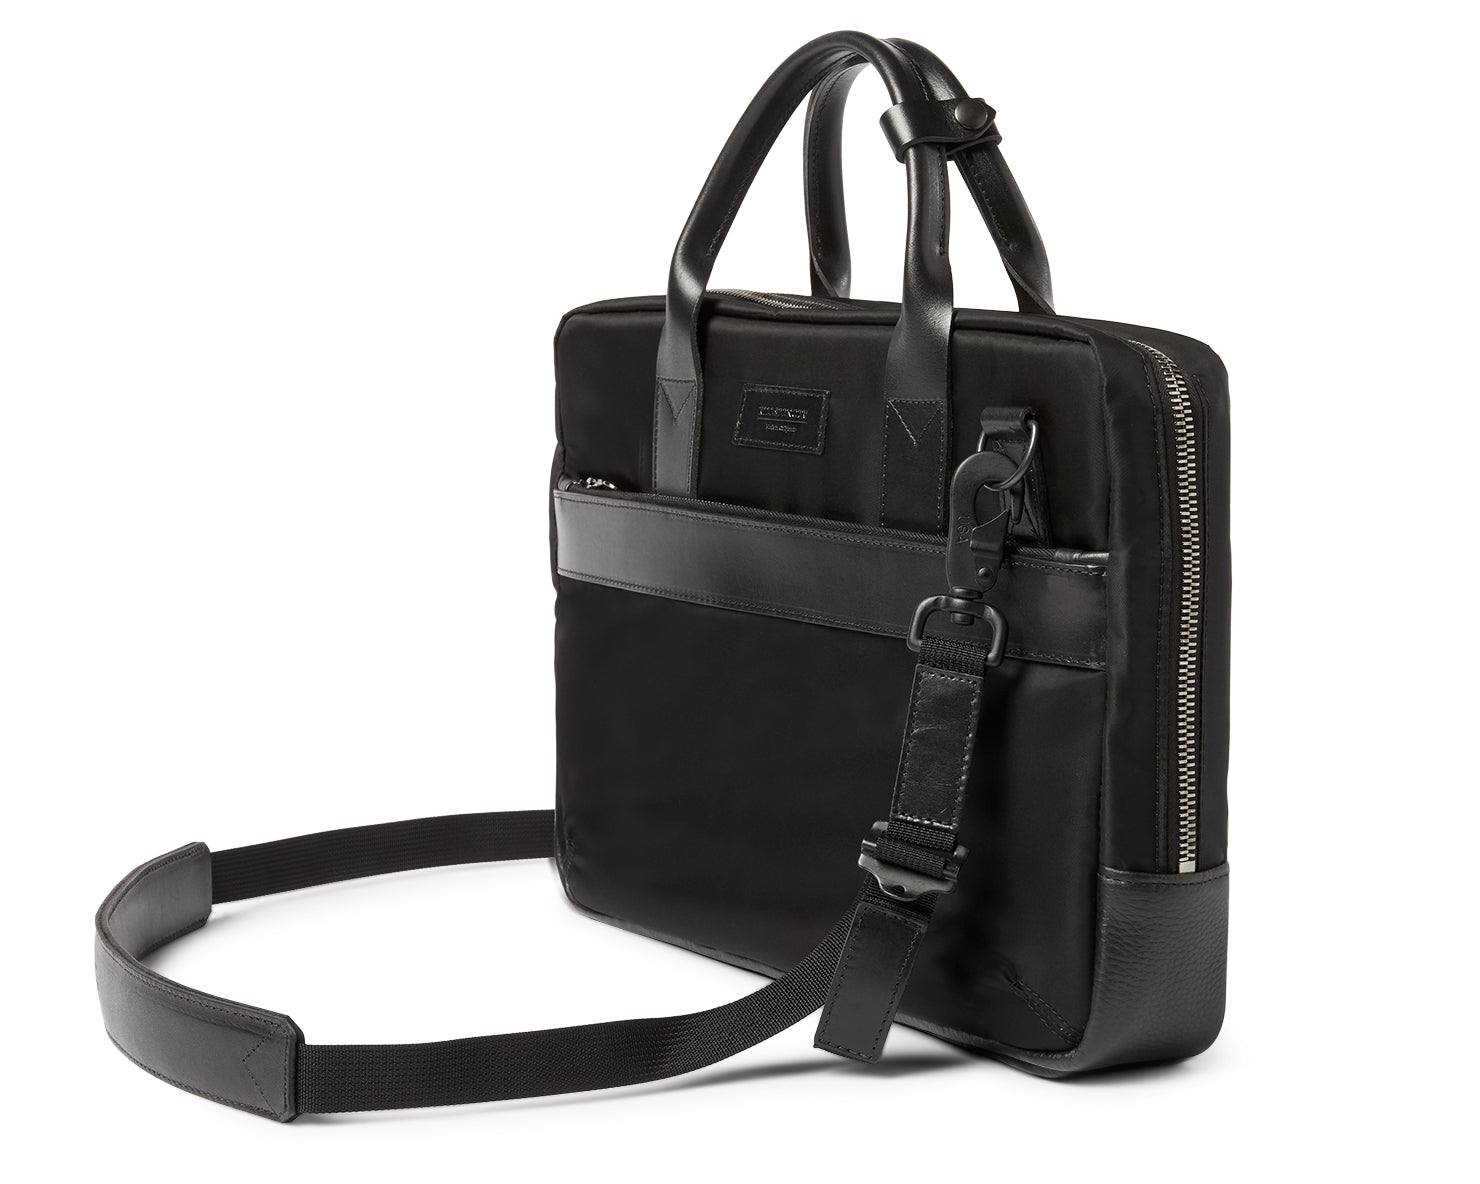 UTILITY ATTACHÉ BRIEFCASE | KILLSPENCER® - Black Italian Nylon and Leather